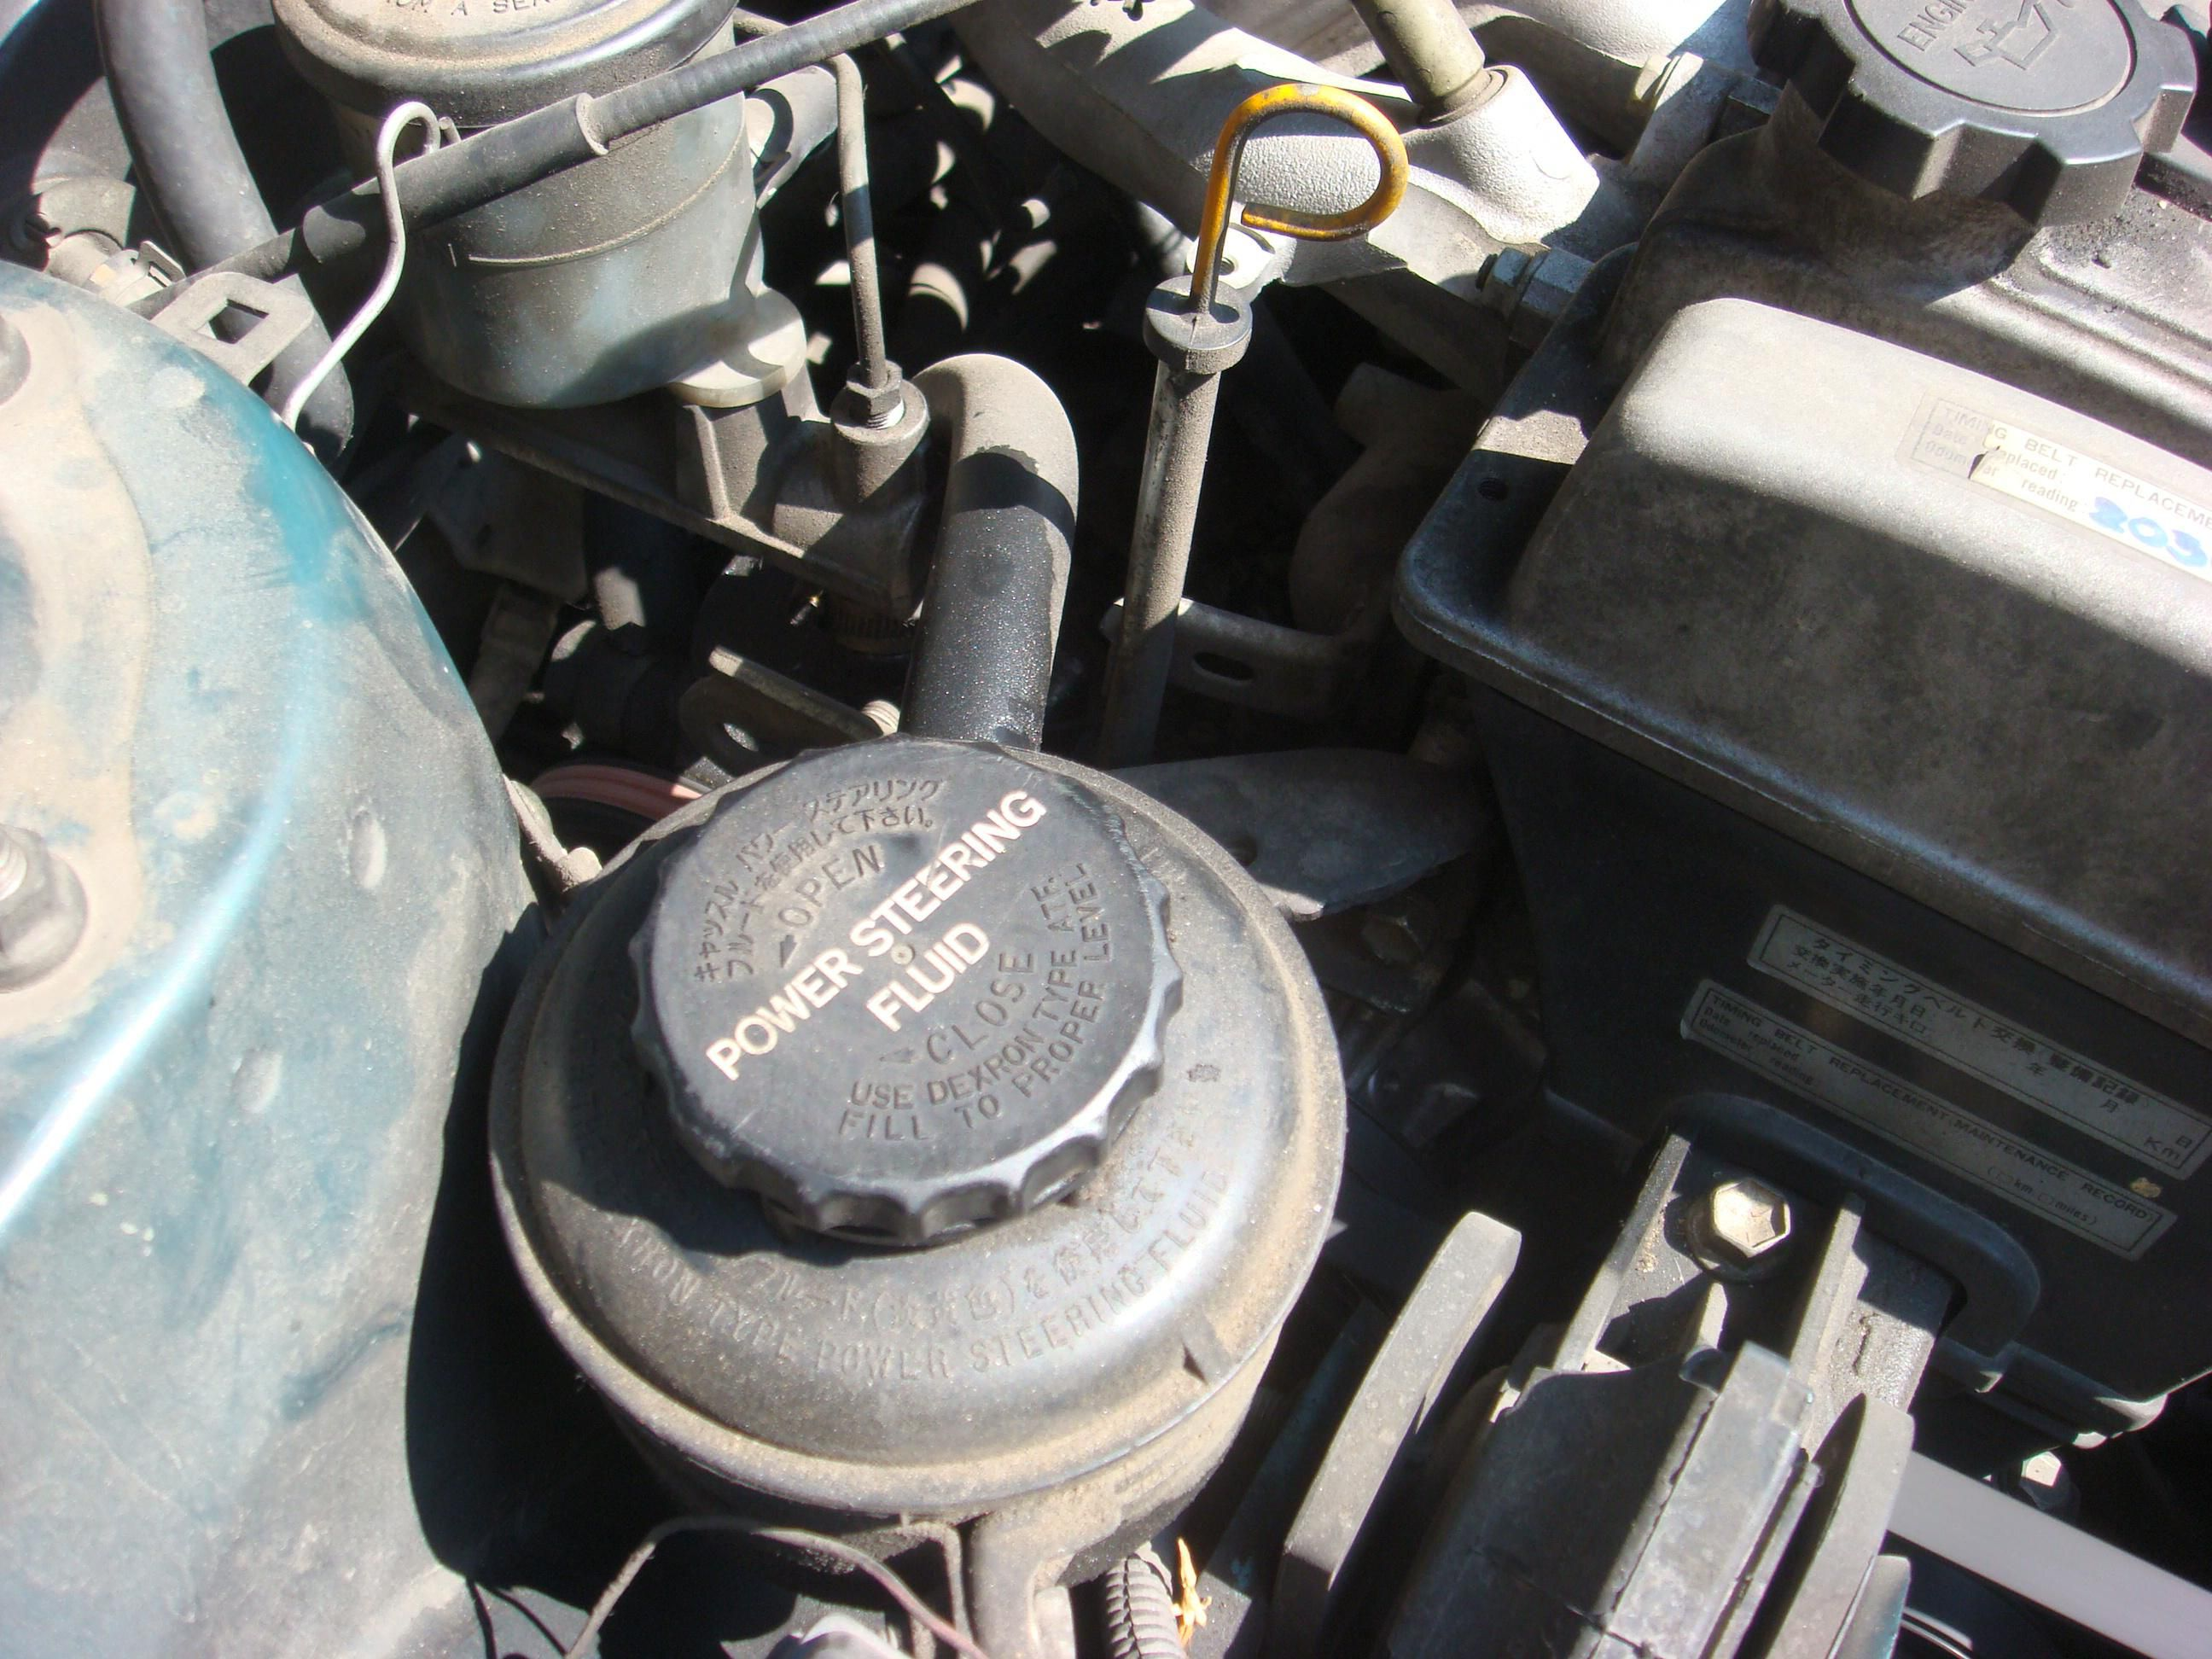 Ford Fusion Fuse Box Lid How To Check And Fill Power Steering Fluid